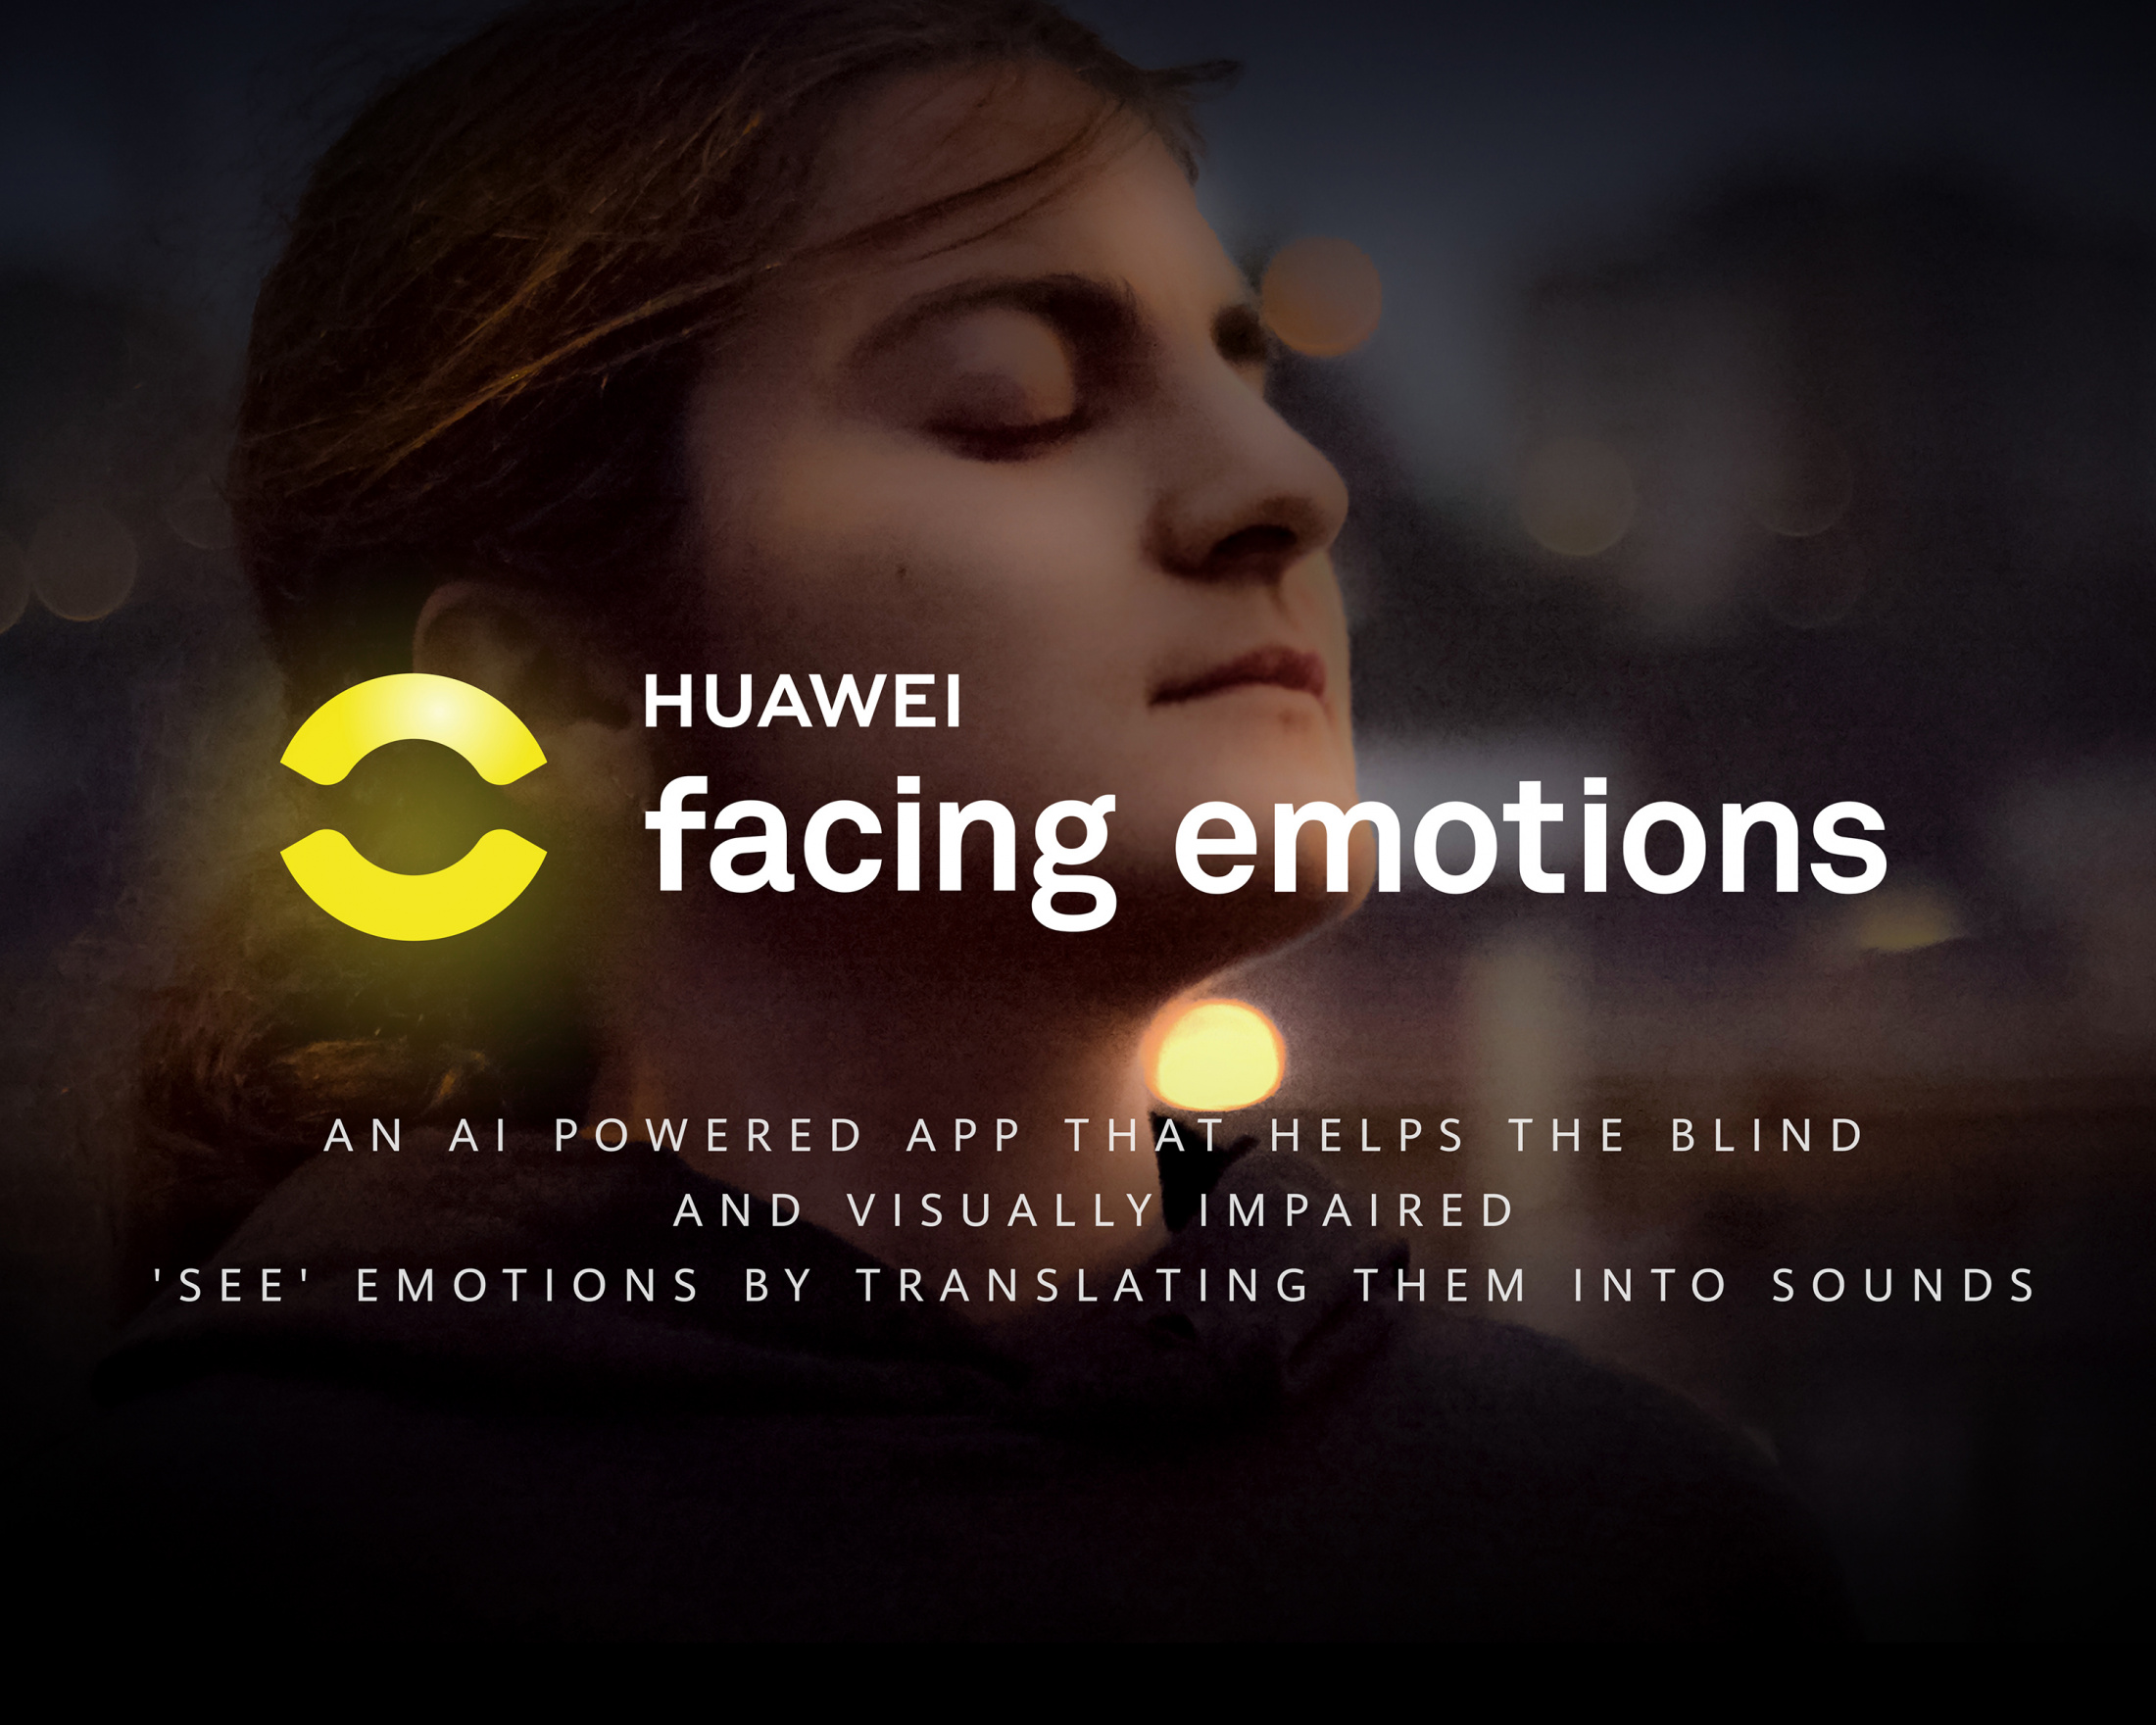 Image Media for Huawei Facing Emotions